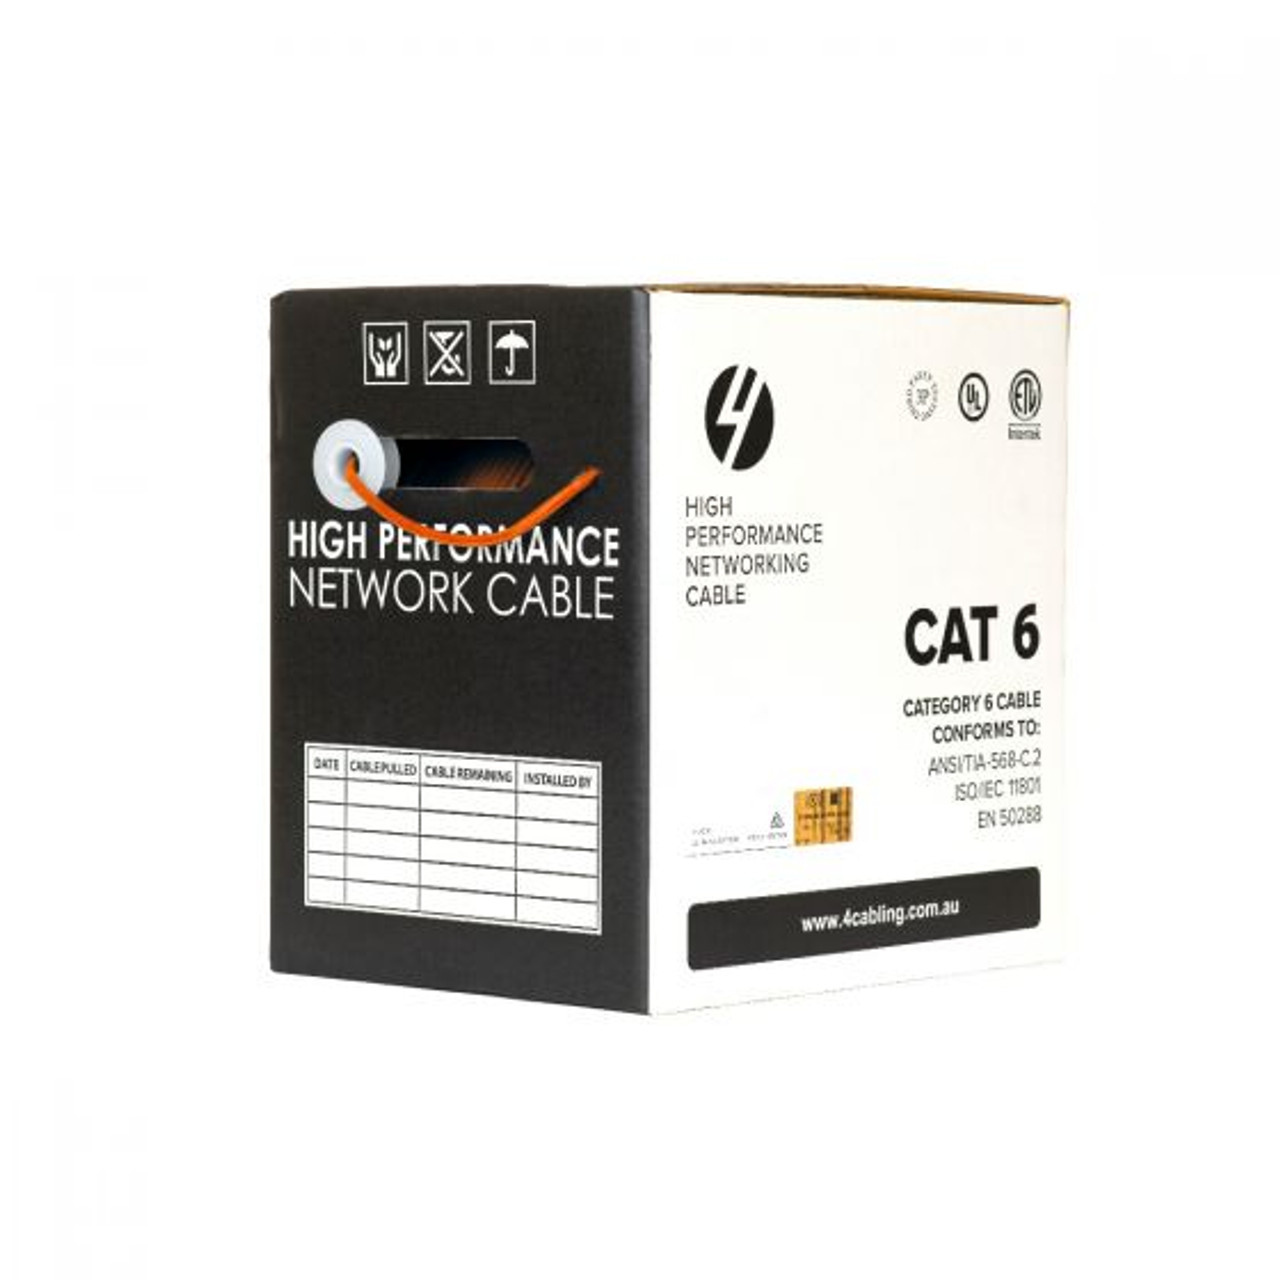 4Cabling CAT6 Ethernet 305m Cable Reel Box. UTP LAN Cable with Solid Conductor. Orange